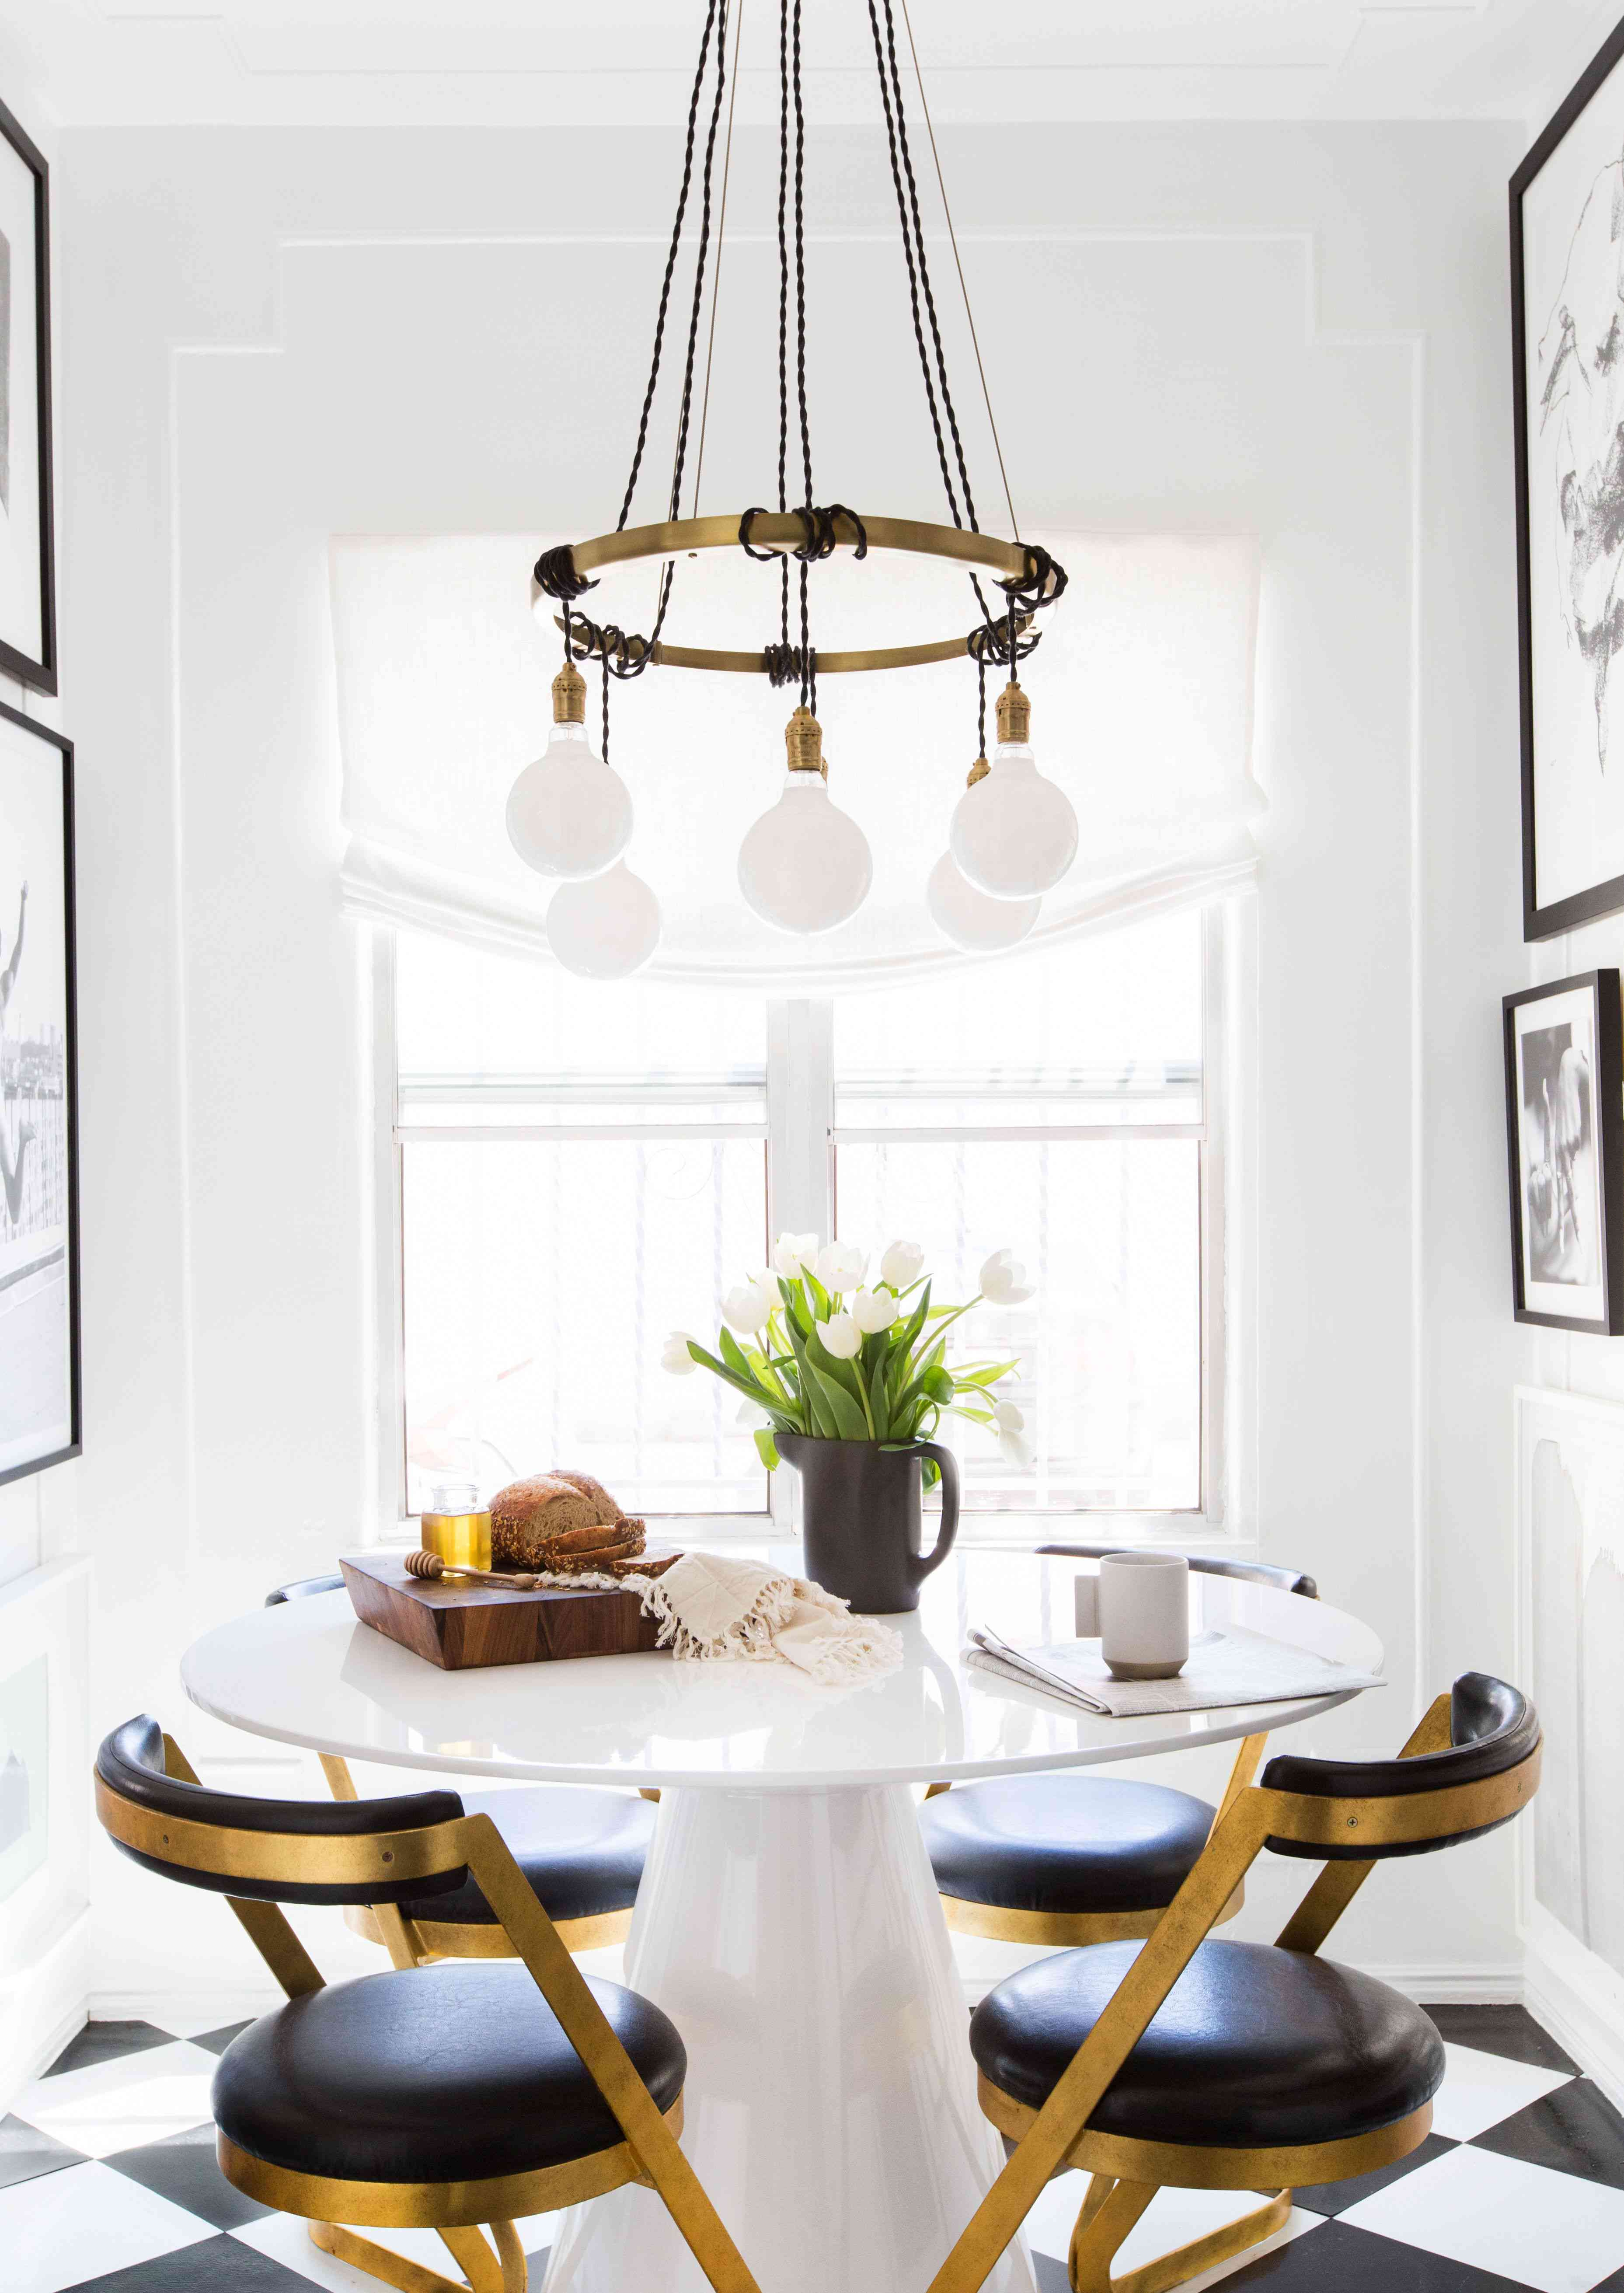 best kitchen ideas - black and white kitchen with breakfast table